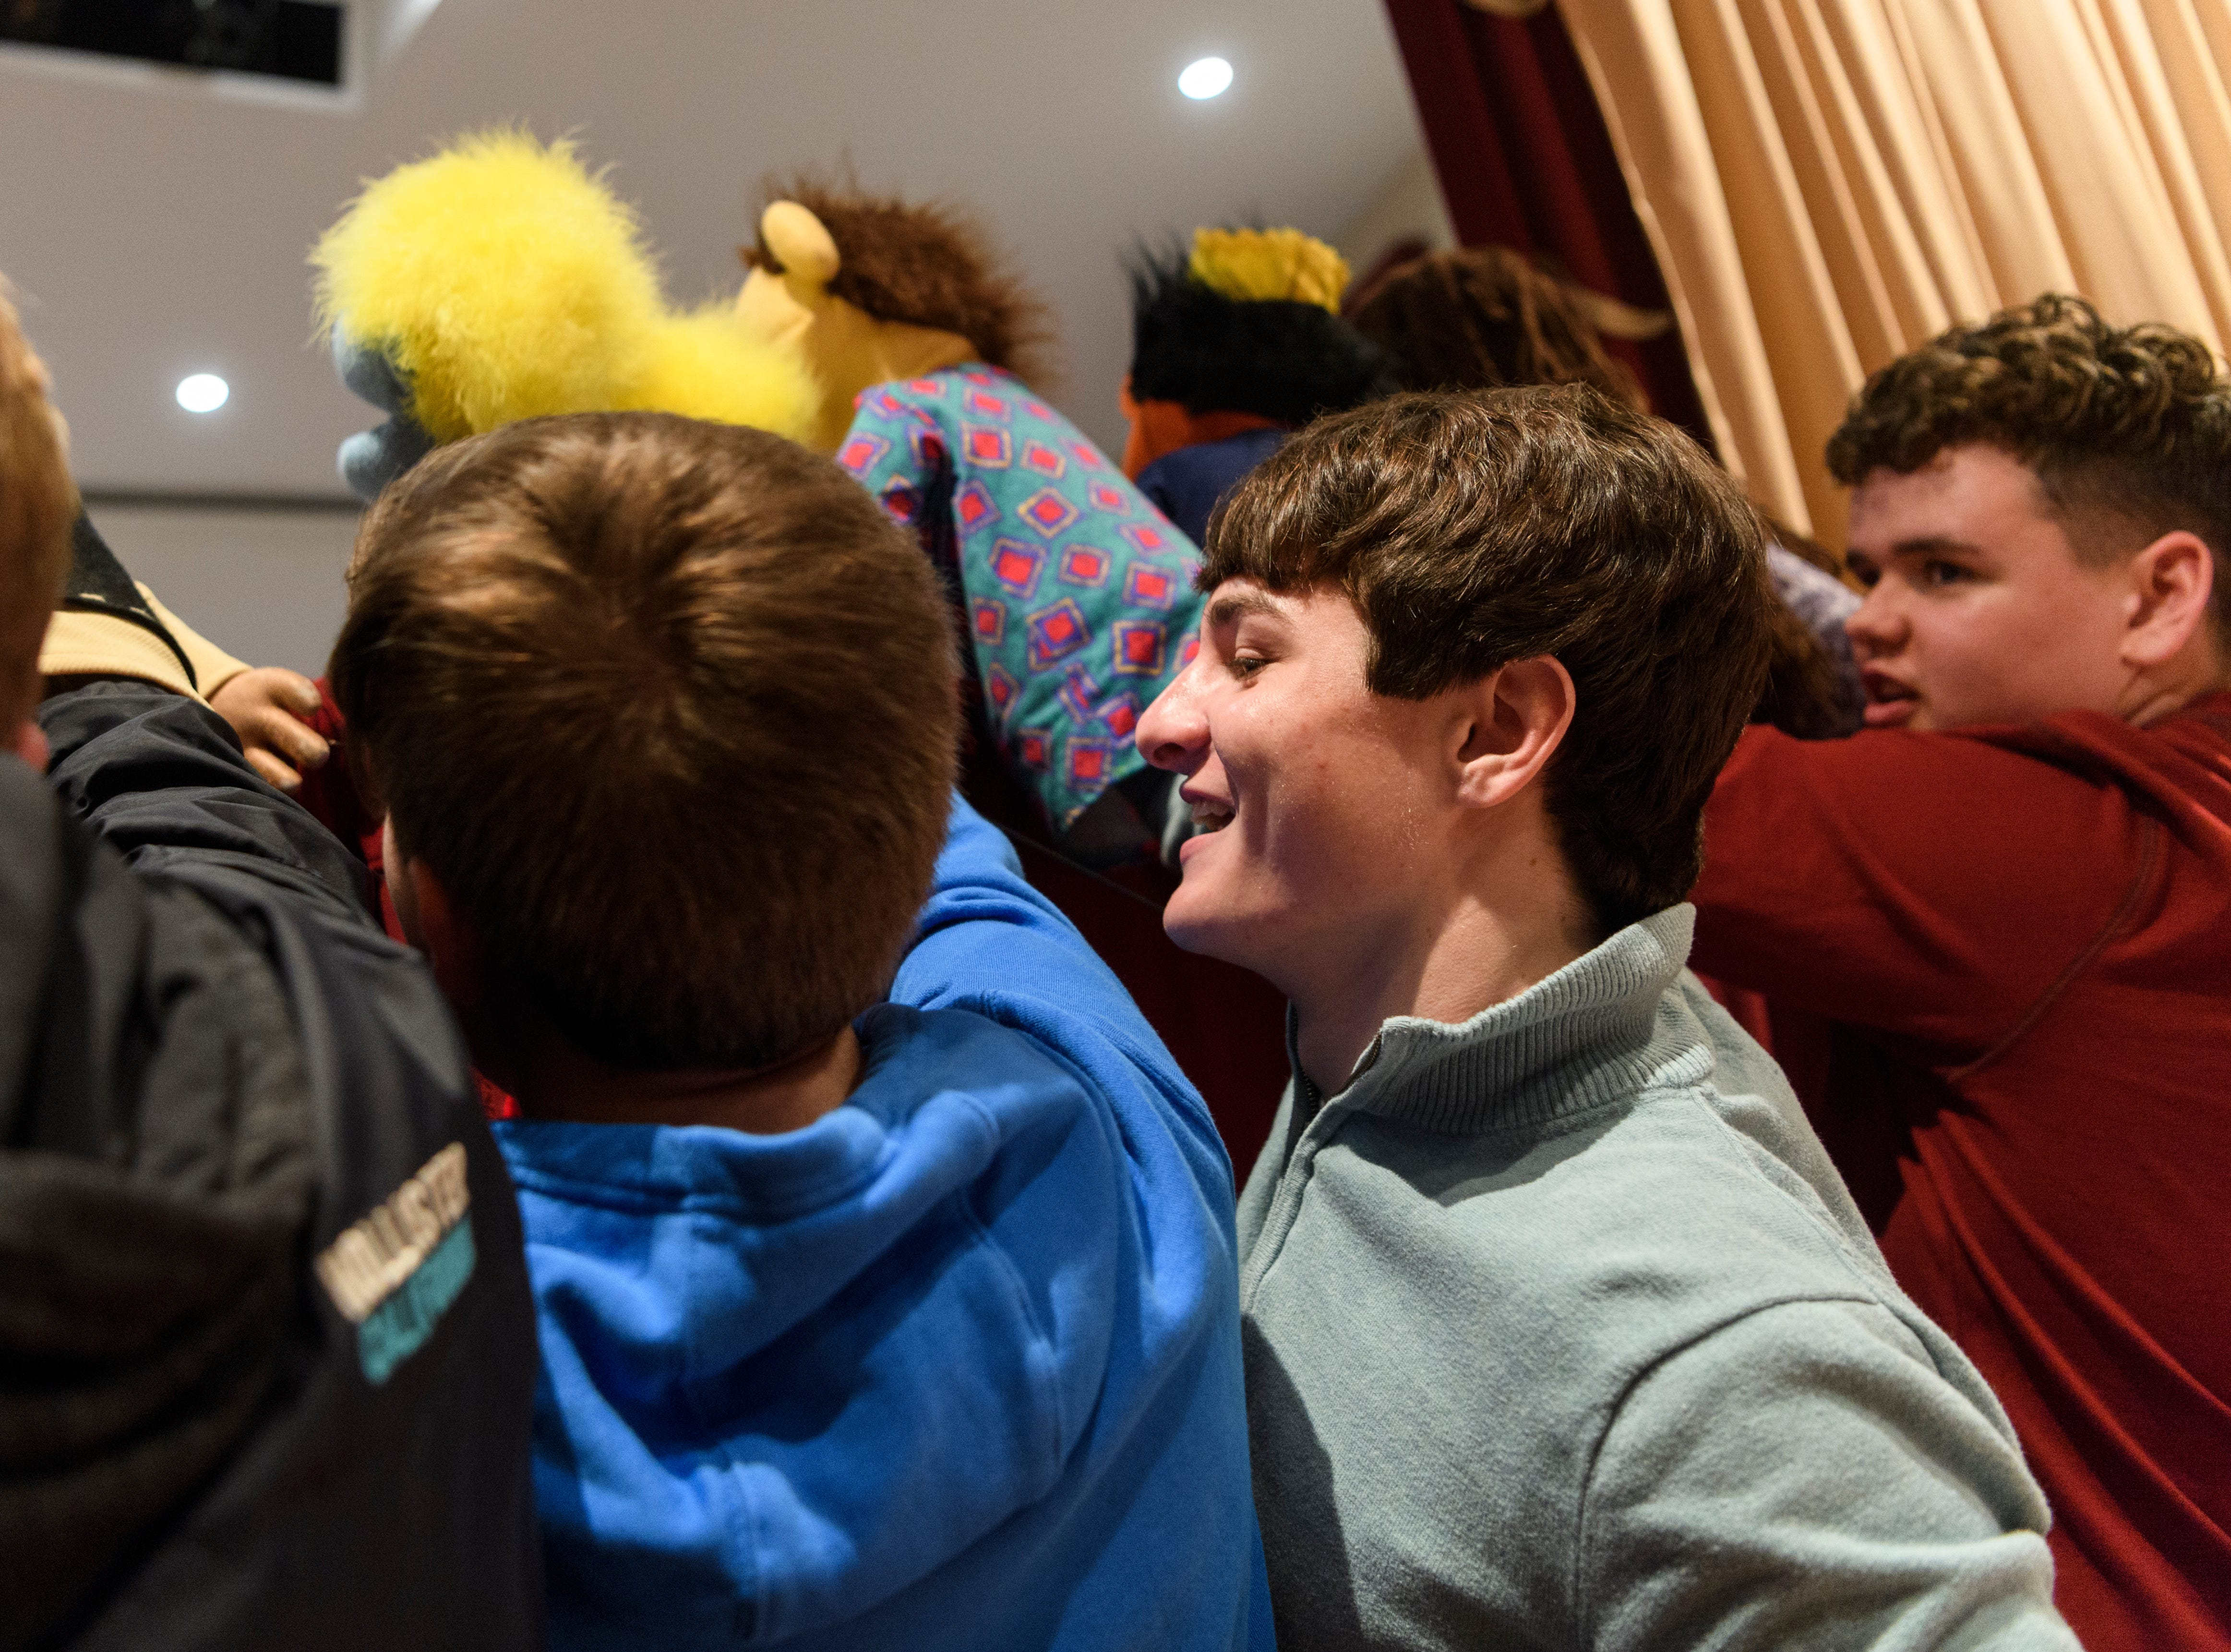 Ben Dalton, center right, jokes around with Jake Perry, center left, as they put on a puppet show for children during the Goodfellows Christmas party at South Middle School in Henderson, Ky., Sunday, Dec. 16, 2018. The puppet show was put on by First Baptist Church's tenth grade Sunday school class, which Dalton and Perry are members of.